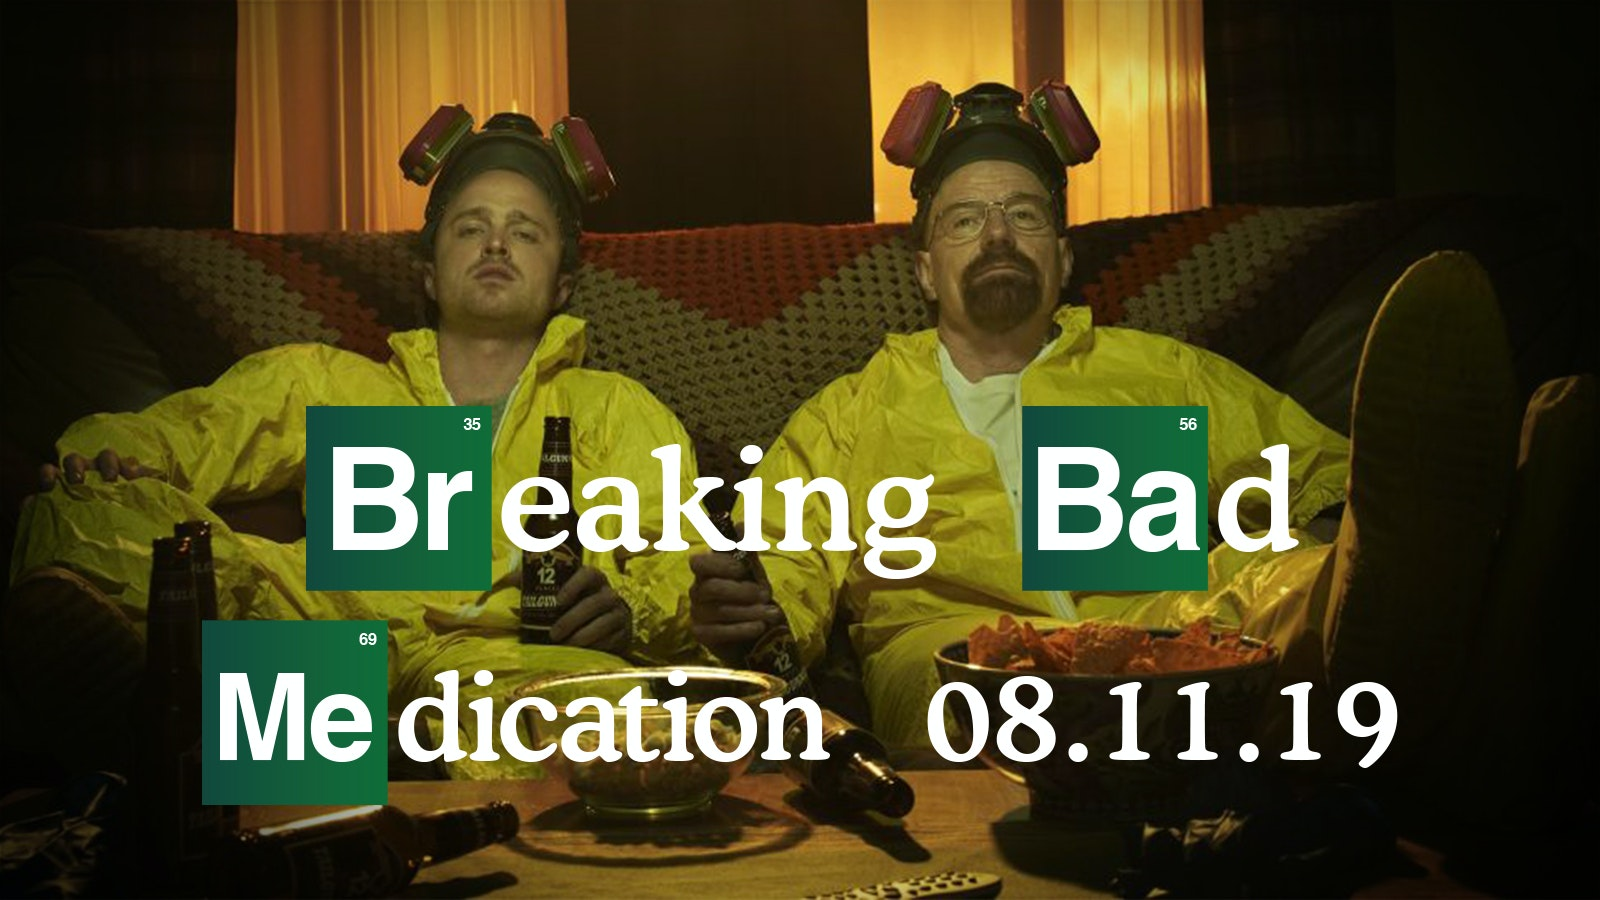 MEDICATION – BREAKING BAD